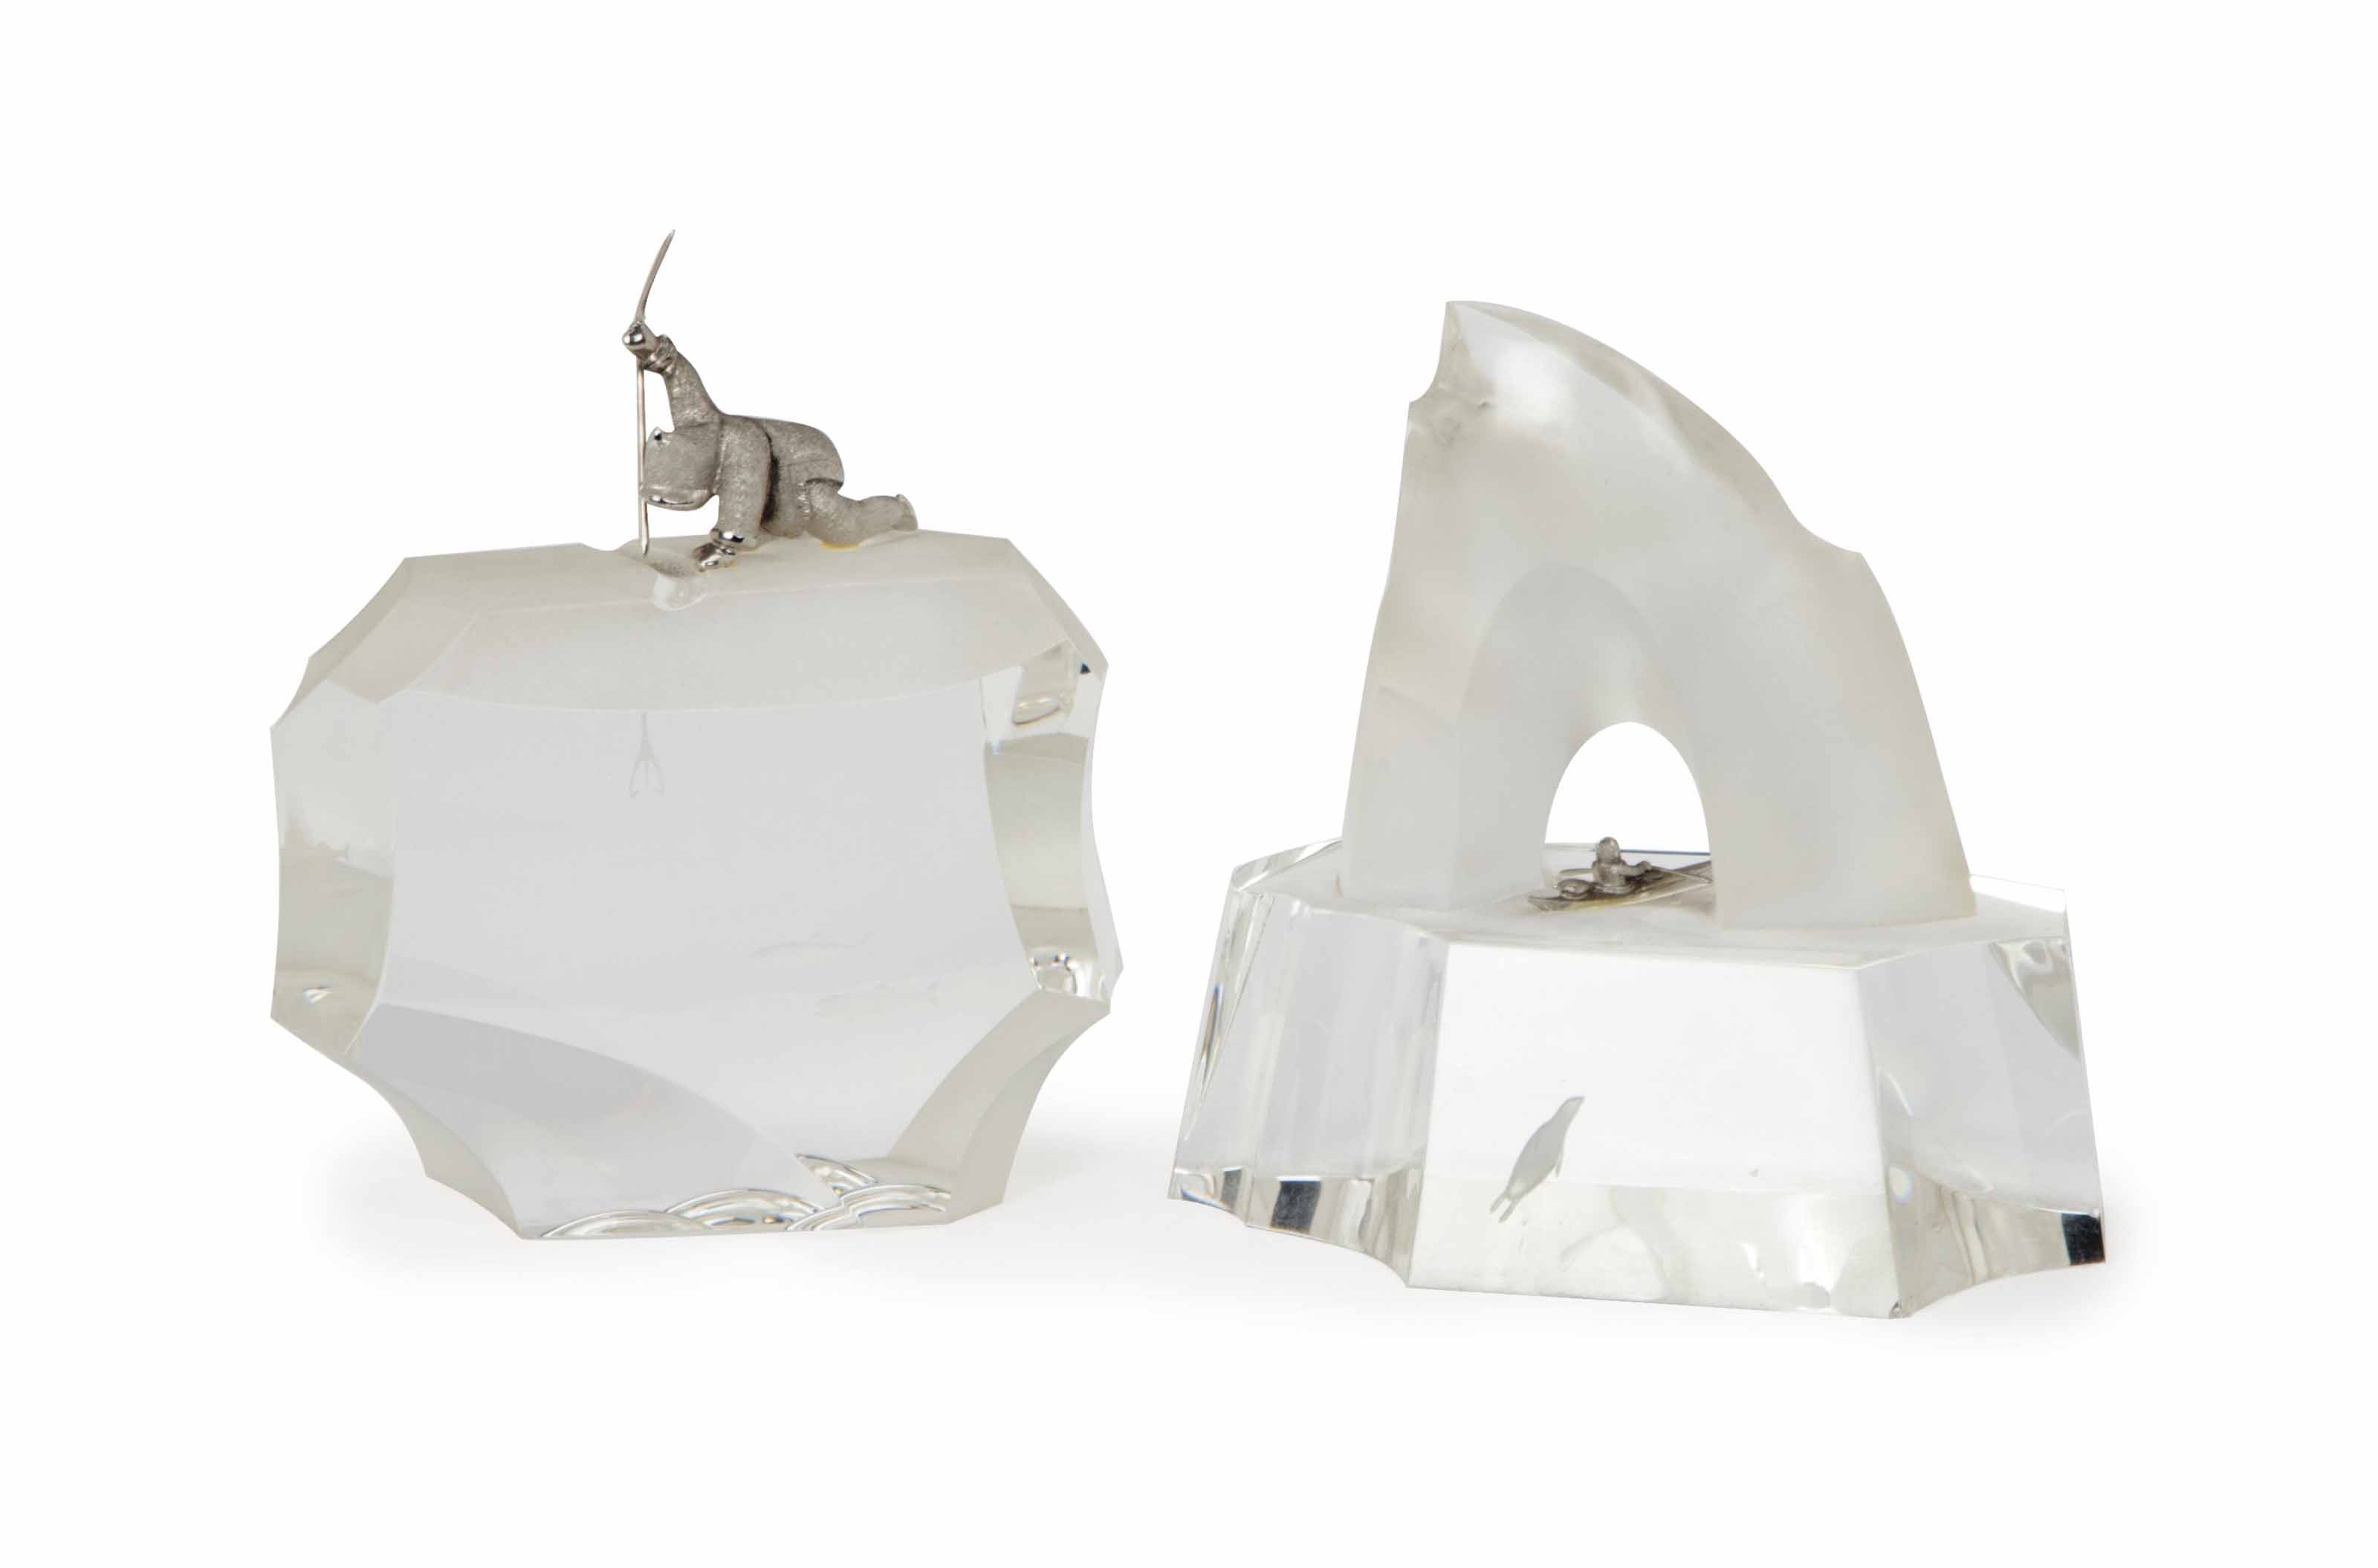 TWO AMERICAN GLASS AND CAST SILVER 'ARCTIC' THEMED TABLETOP SCULPTURES,